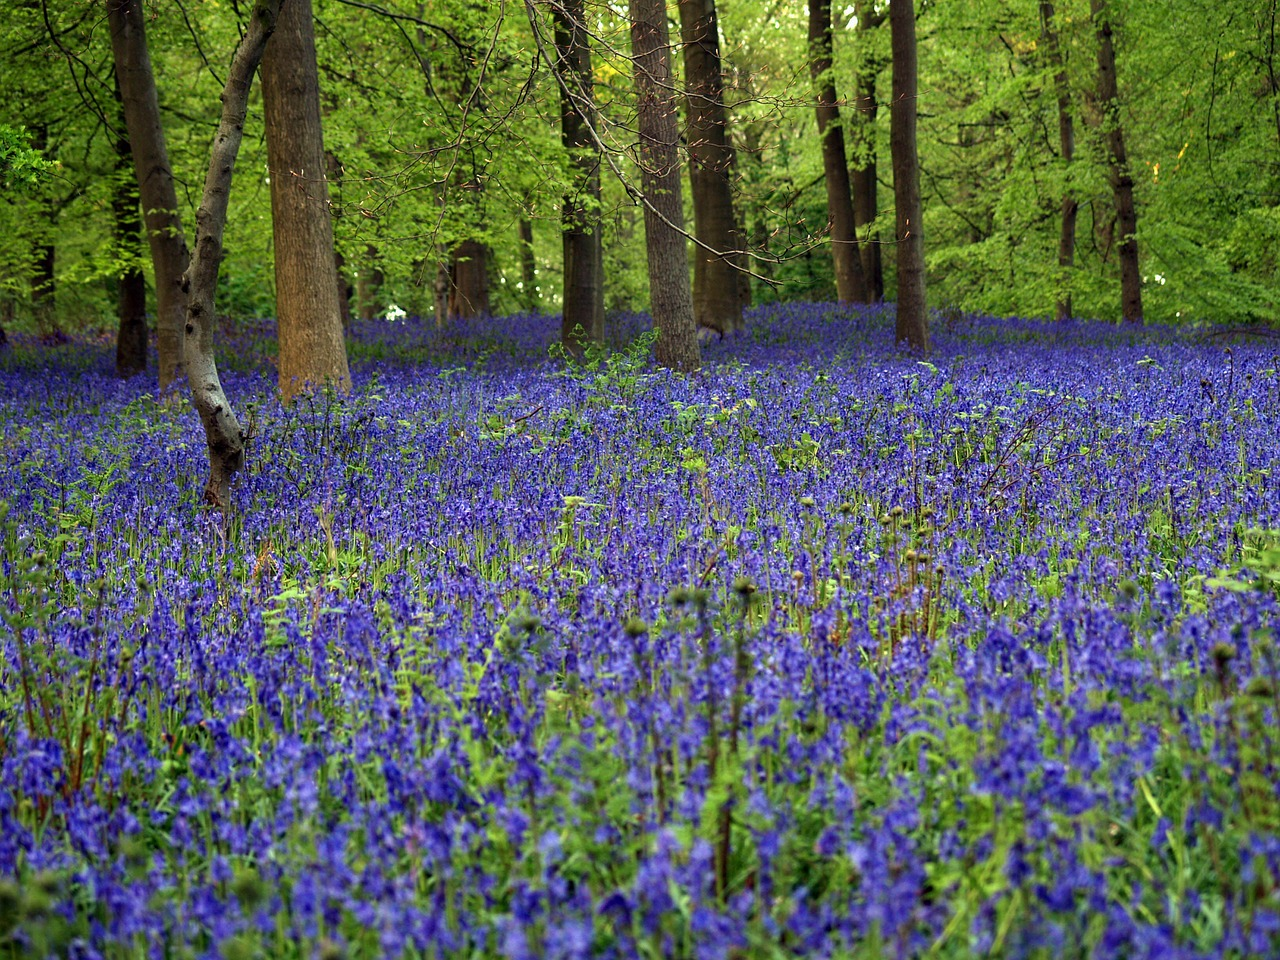 Carpet of Blue Bells